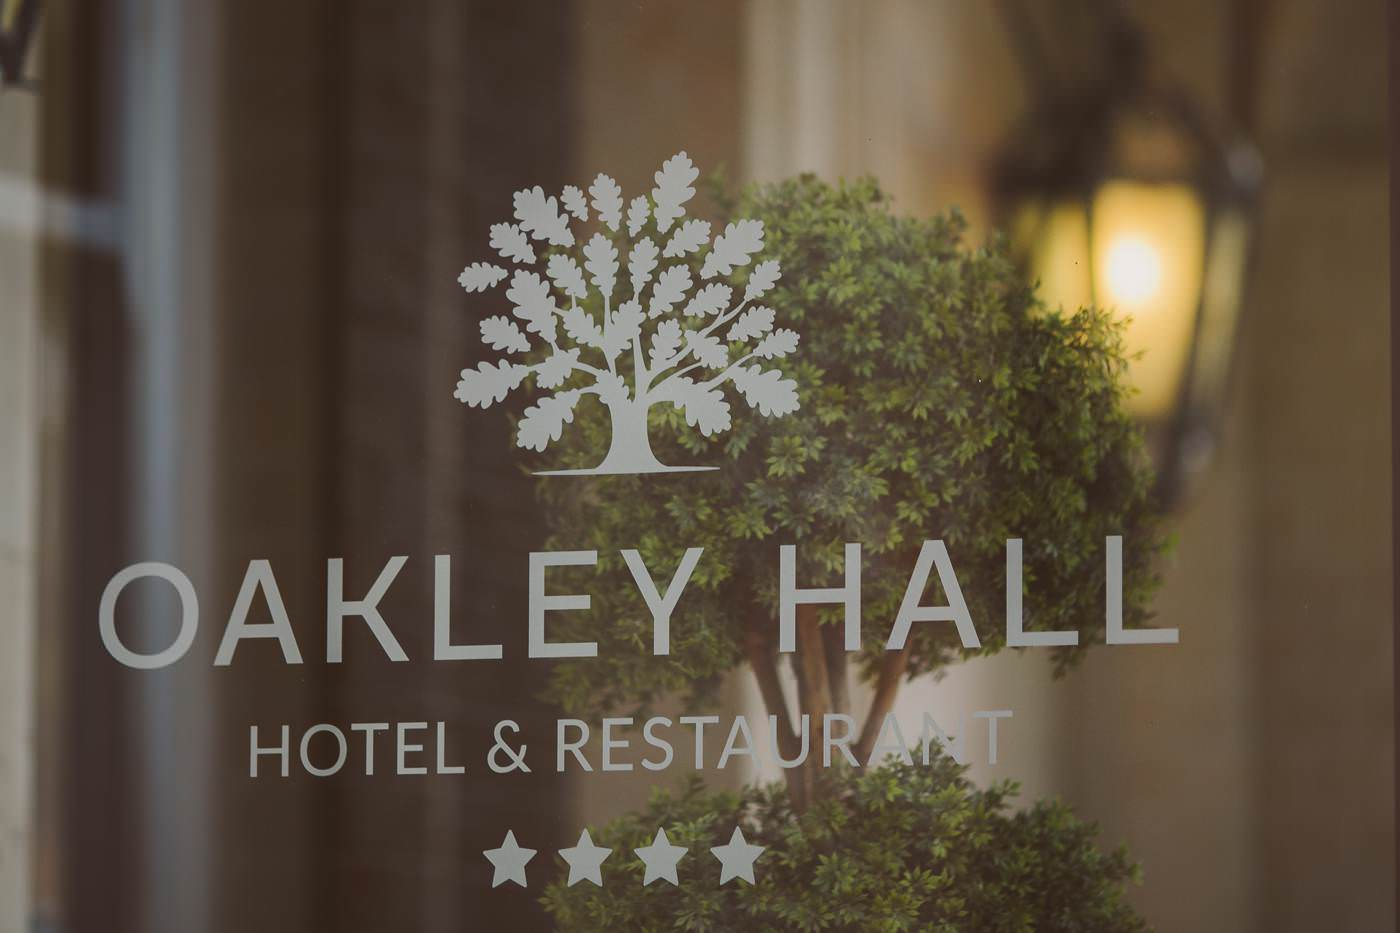 oakley hall hotel